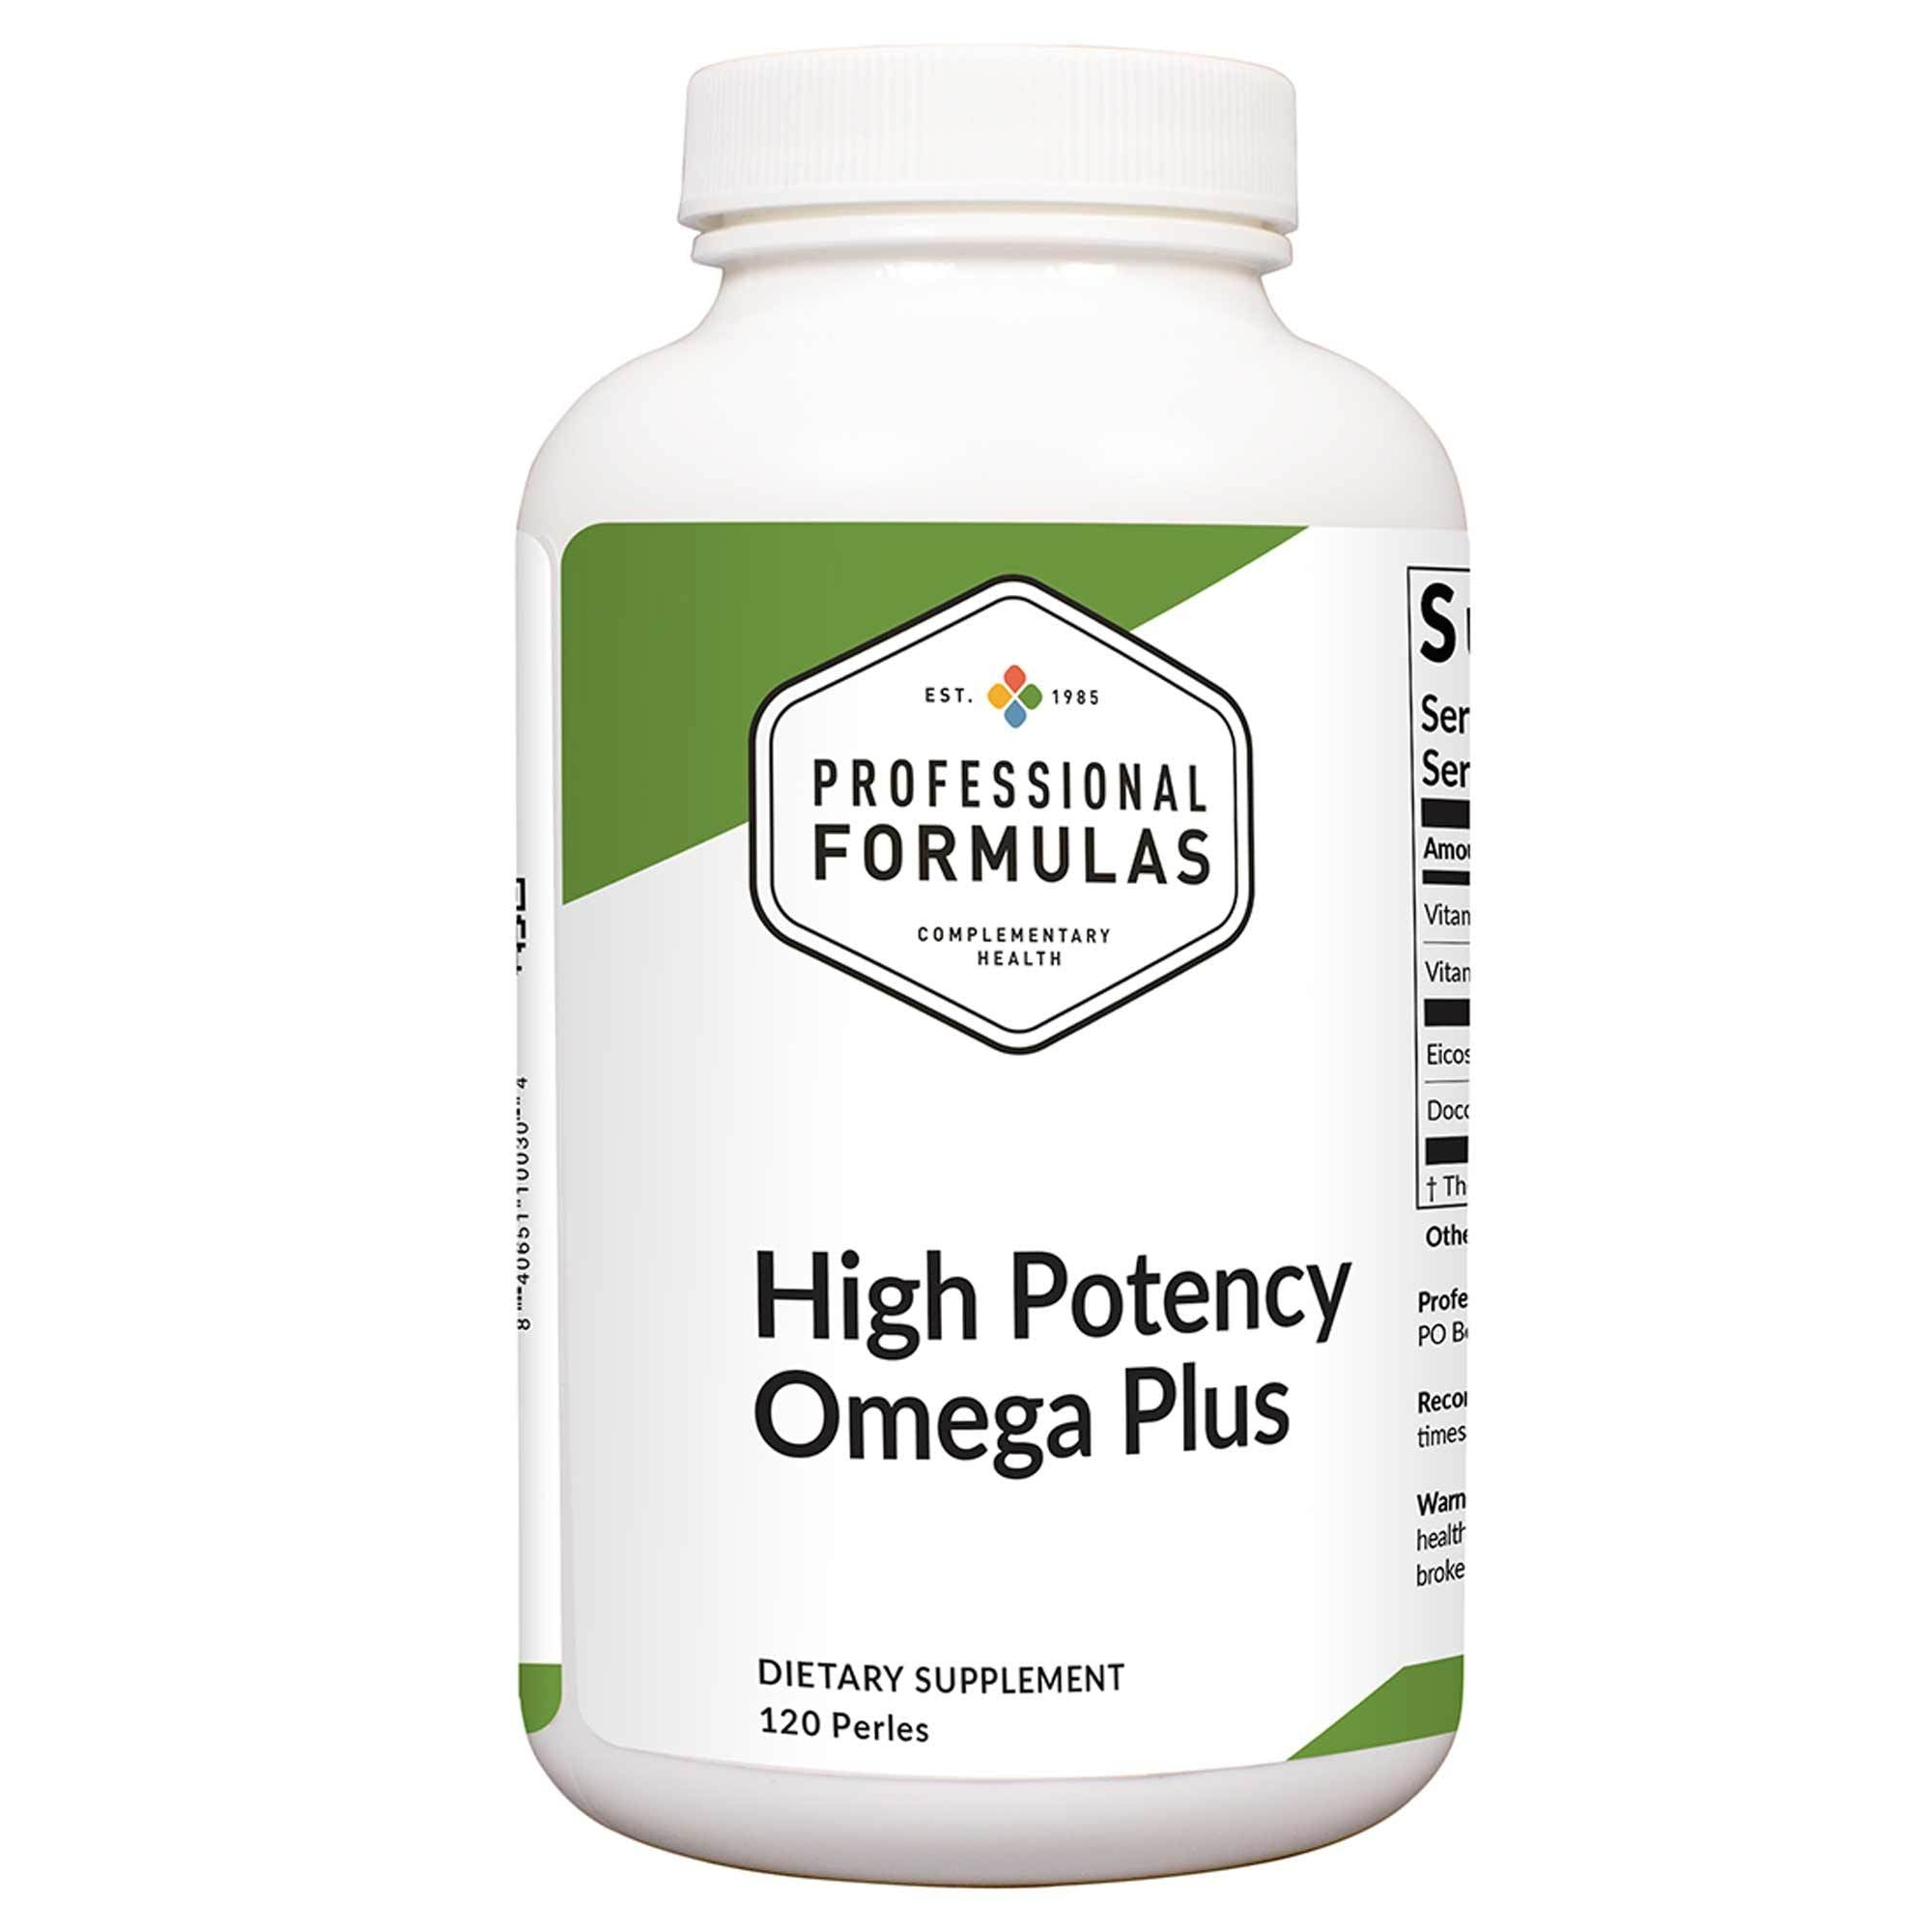 High Potency/Omega Plus 120 perles Professional Formulas